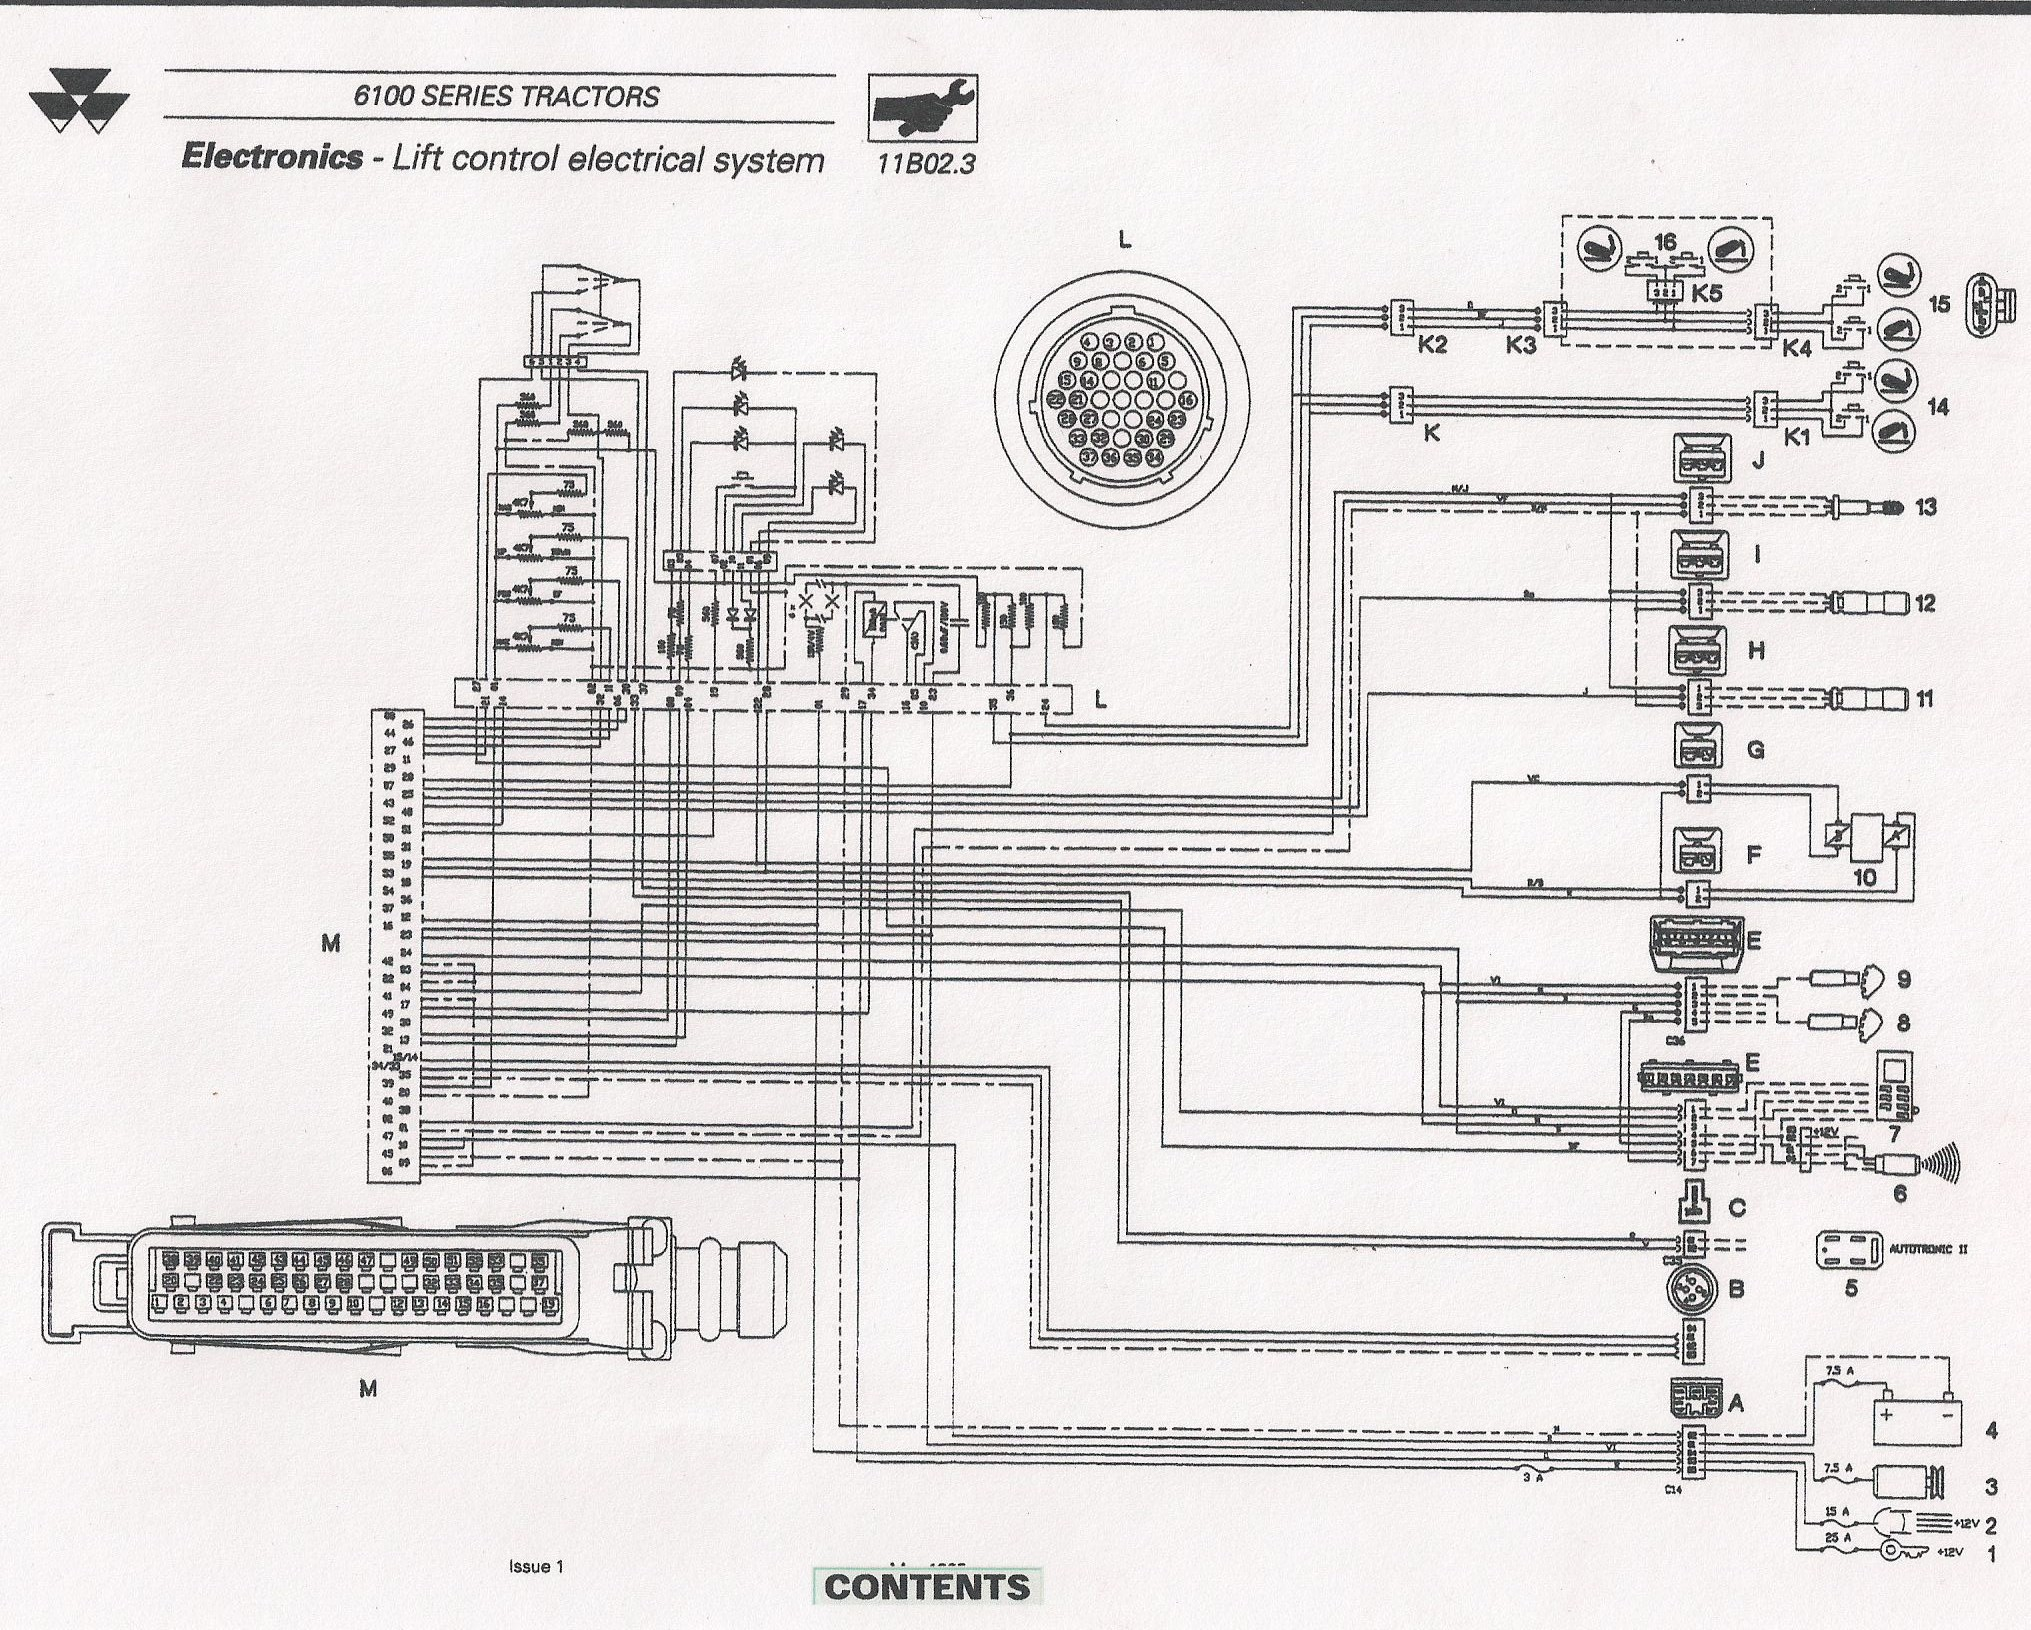 rz wiring diagram with Topic2083445 on 1173803 likewise Rj45 Wiring Diagram For Ether furthermore 22re Fuel Injection Wiring Diagram moreover economycycle likewise Toyota Engine 2rz Fe 3rz Fe Ewd Repair Manual.